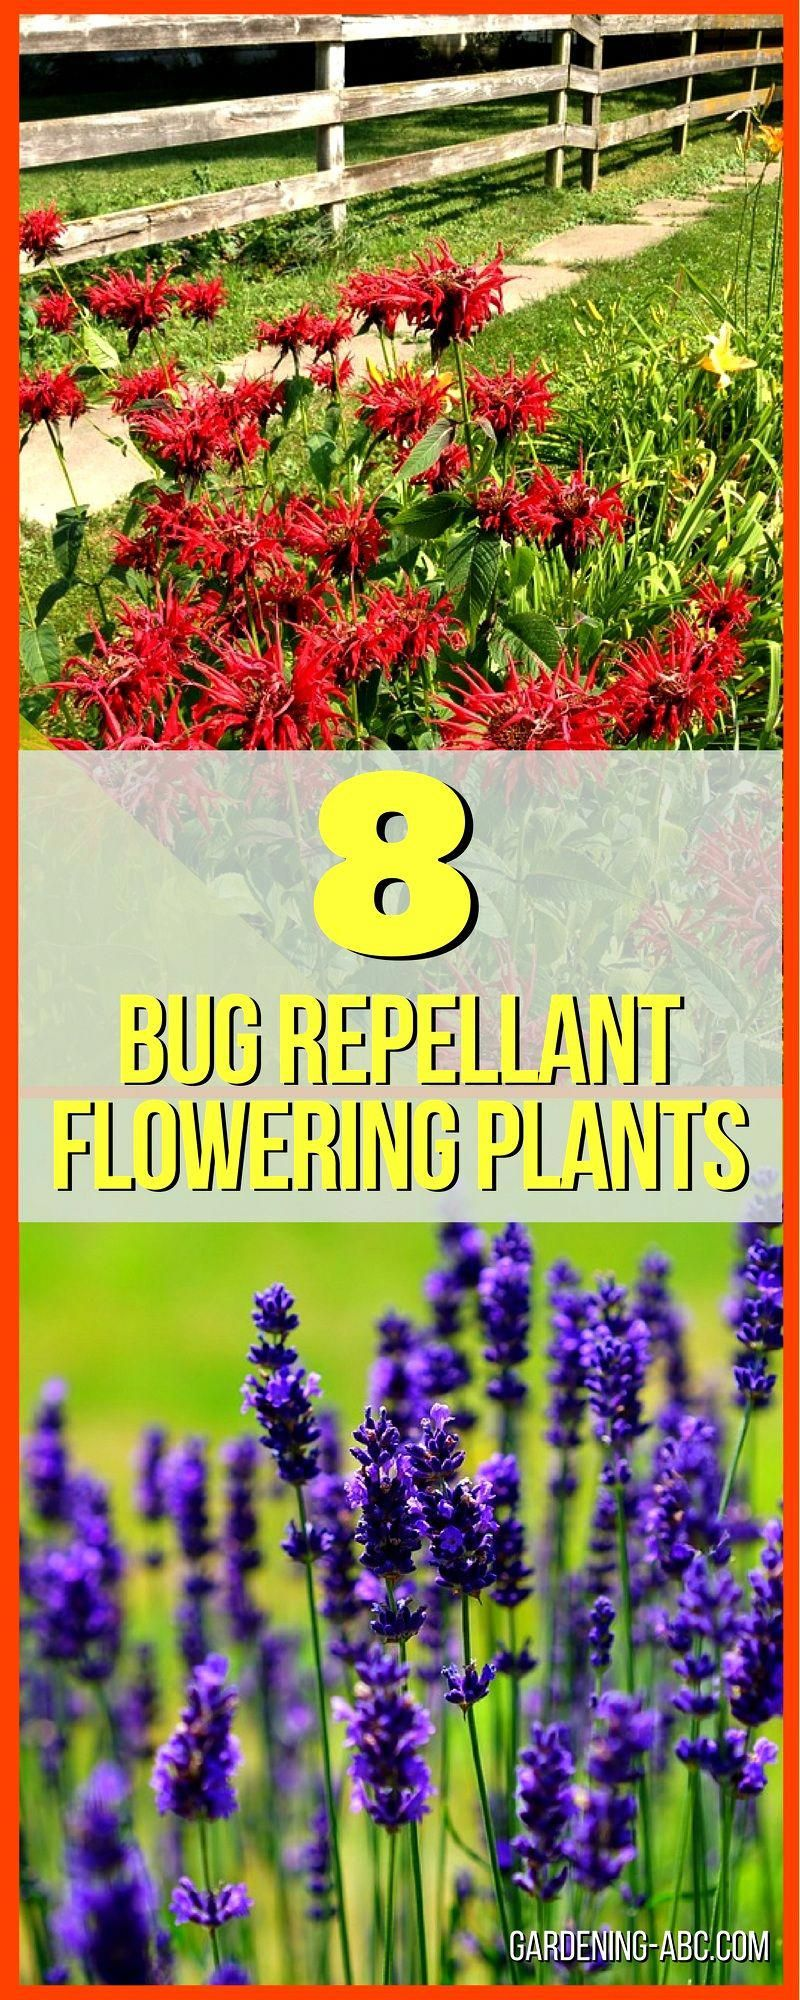 8 Plants That Not Only Work As Bug Repellent but Also Look Good in Garden #pesttreatment,pestcontrol,doityourselfpestcontrol,pestcontrolservices,pestrepeller,preventivepestcontrol,homepestcontrol,bestpestcontrol,electronicpestcontrol,pestinspection,organicpestcontrol #mosquitoplants